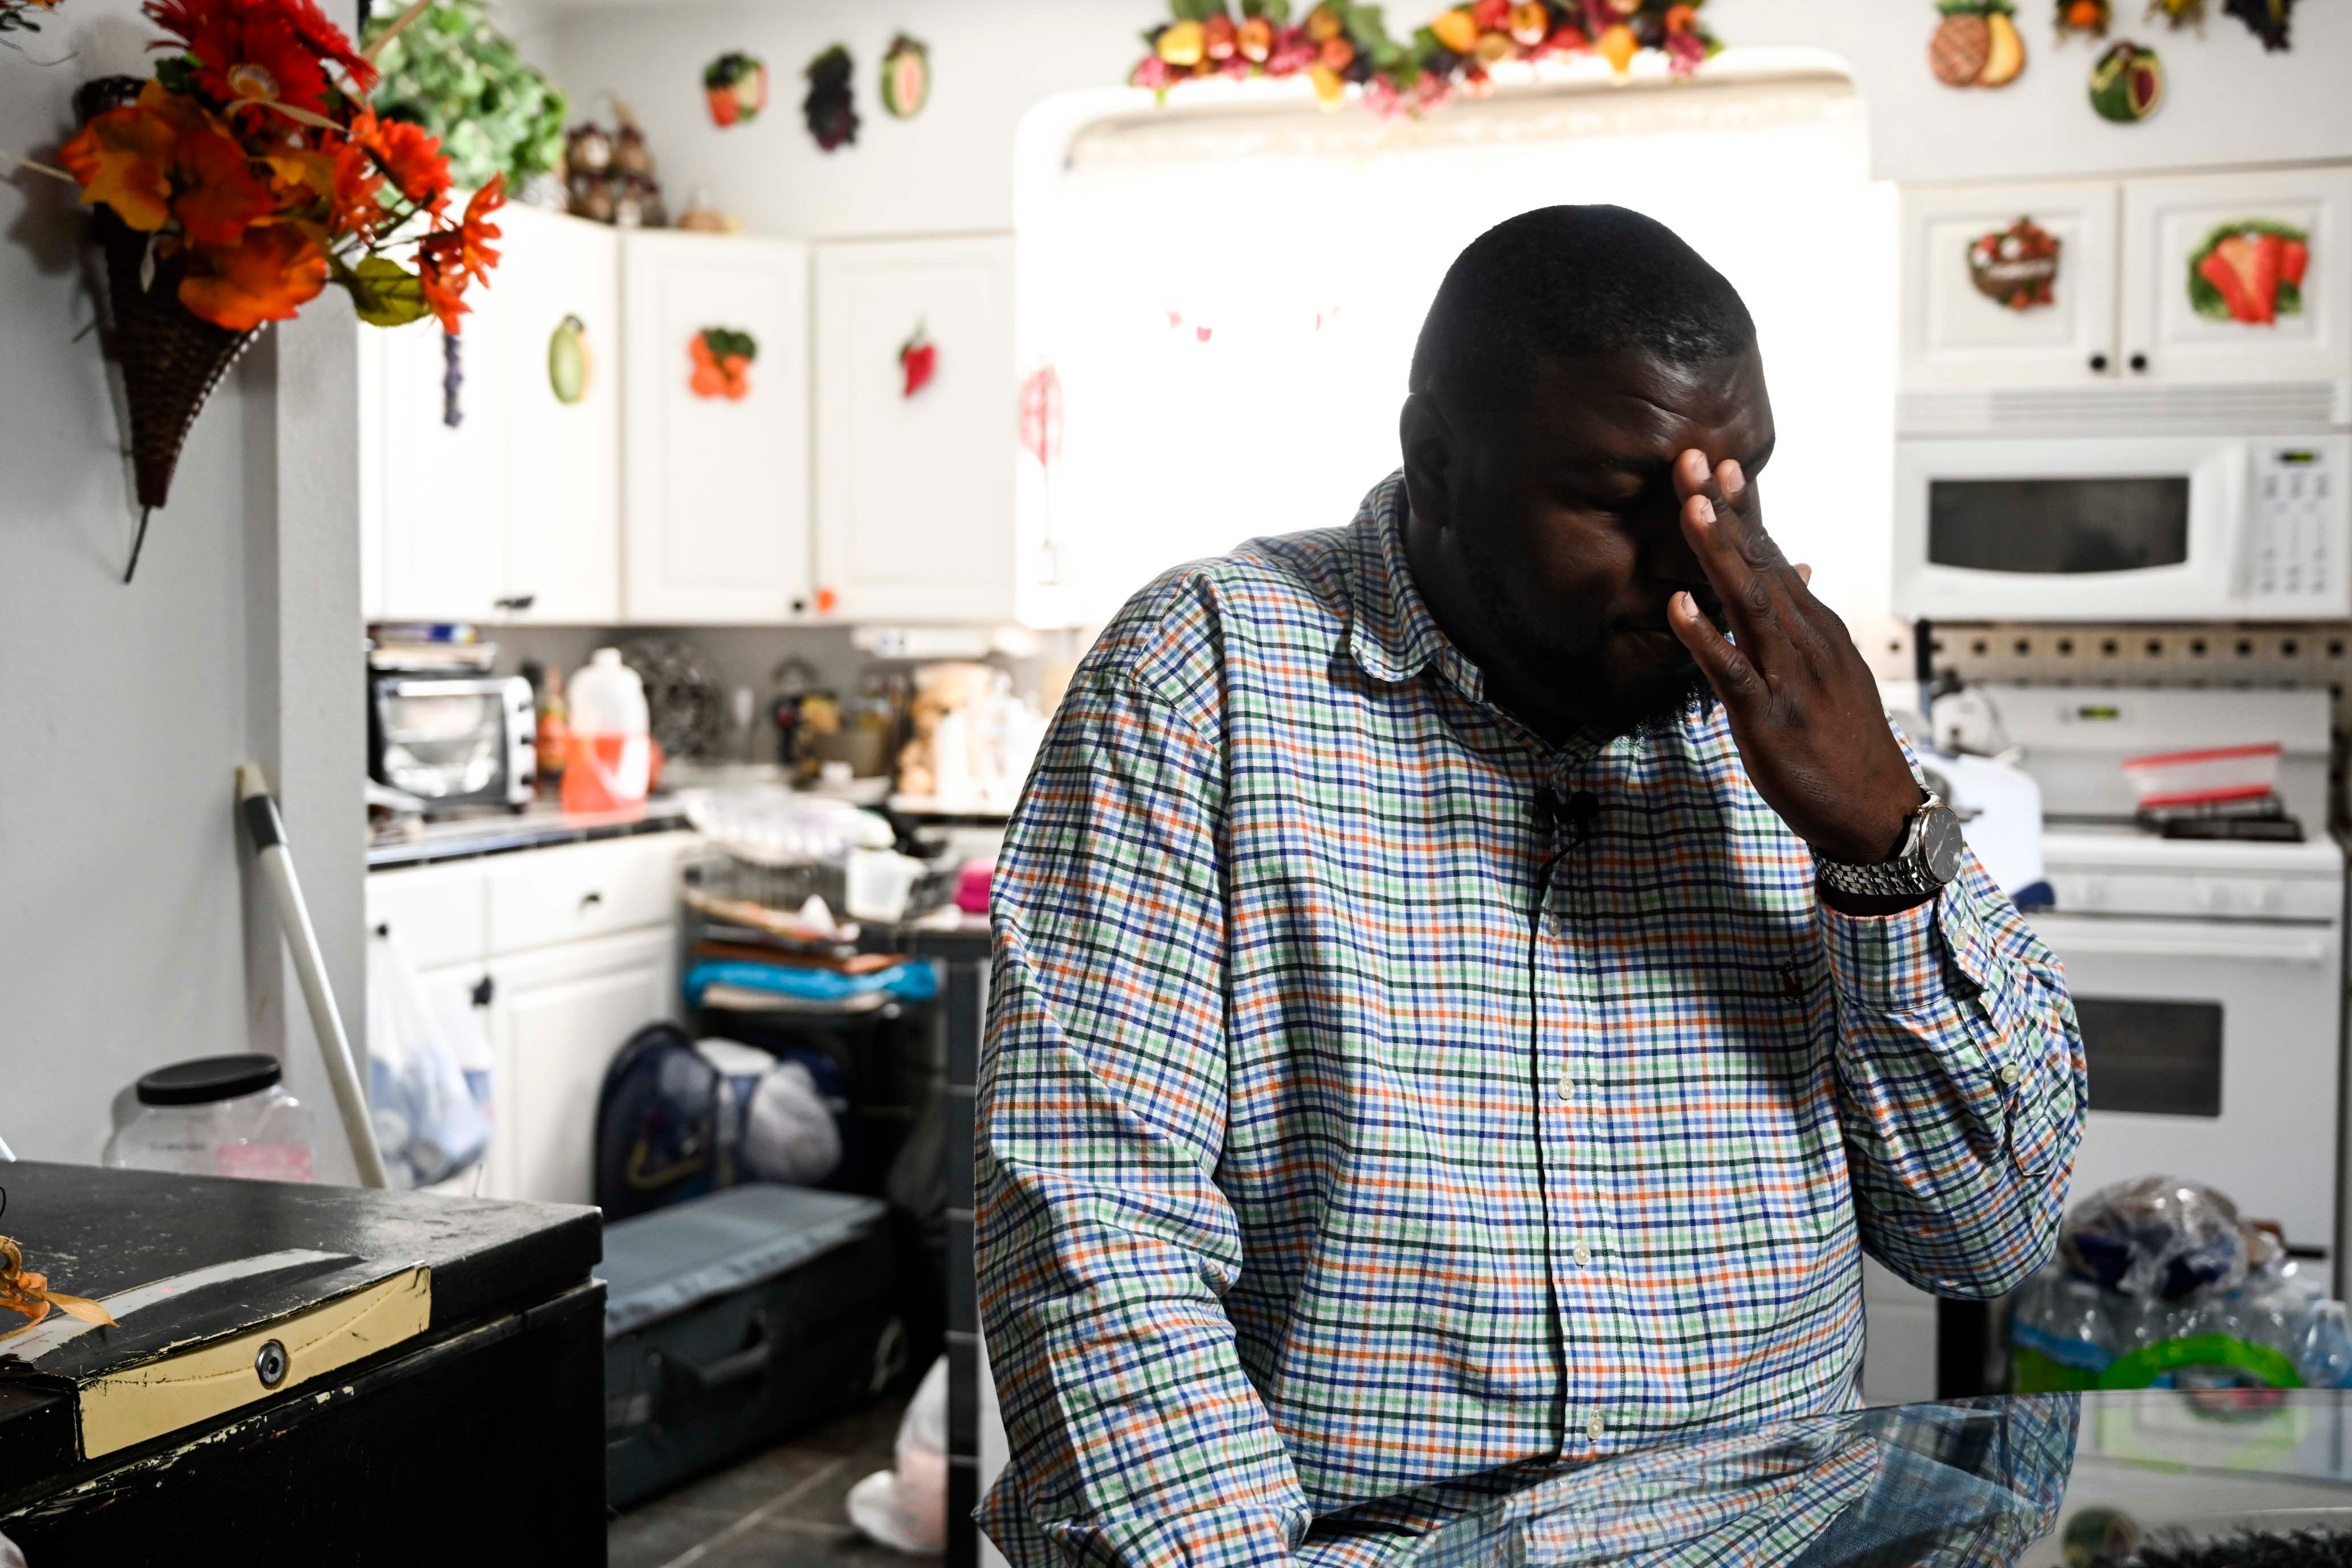 """Jamal Wright said excitement turned to horror in the hours after his then-girlfriend Nicole Phillips gave birth. """"I expected her to get the best care possible. That didn't happen though,"""" said Wright, who is raising their daughter, Janaya."""